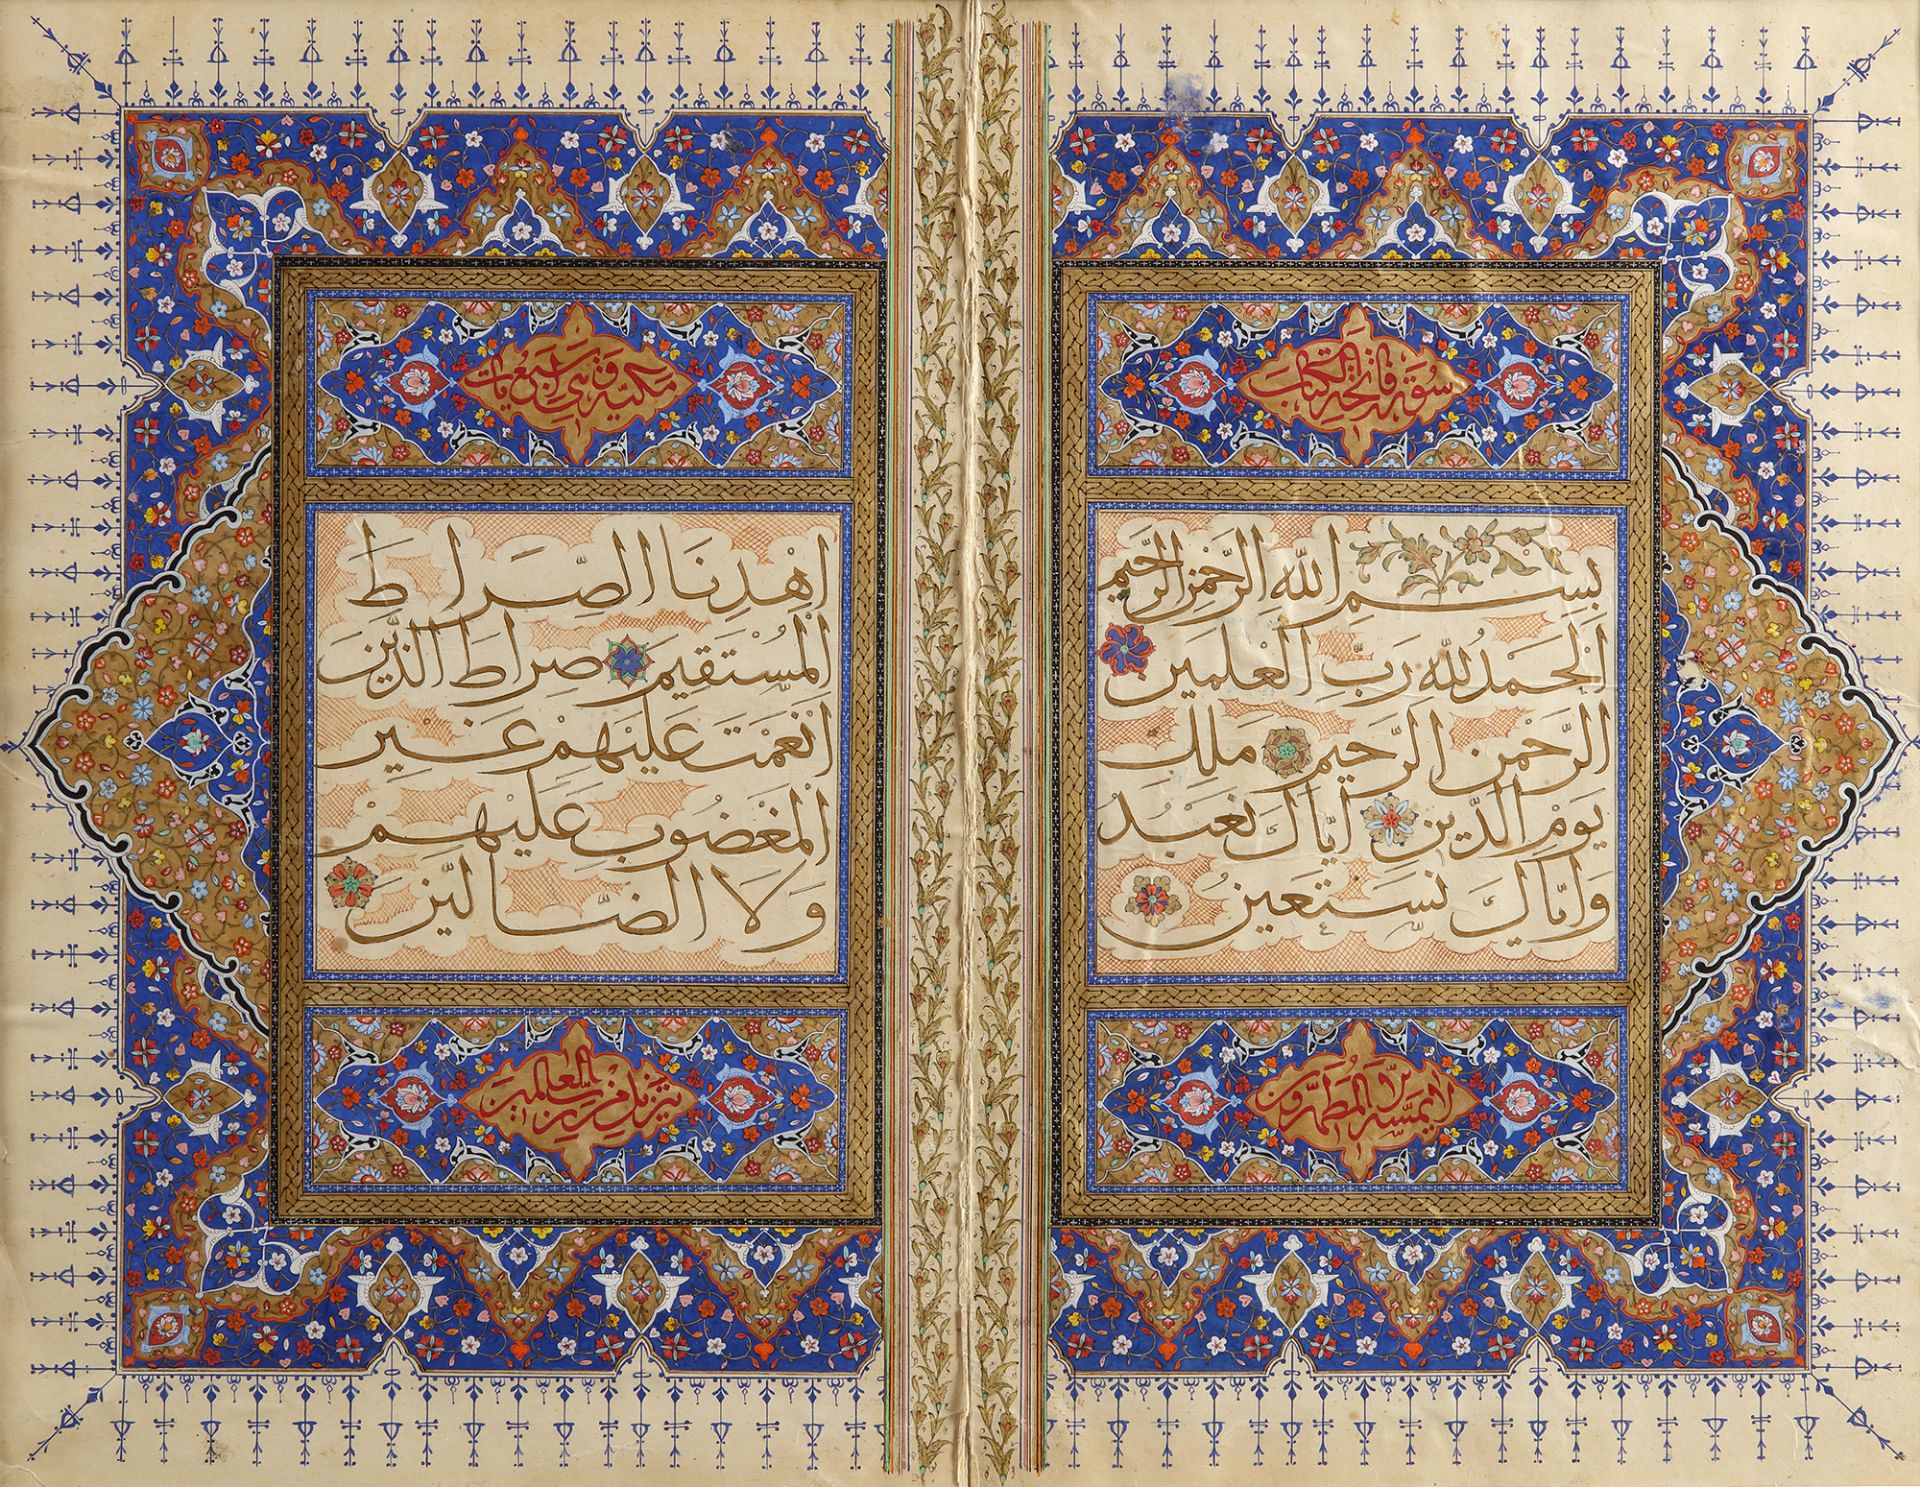 TWO OTTOMAN ILLUMINATED QURAN PAGES